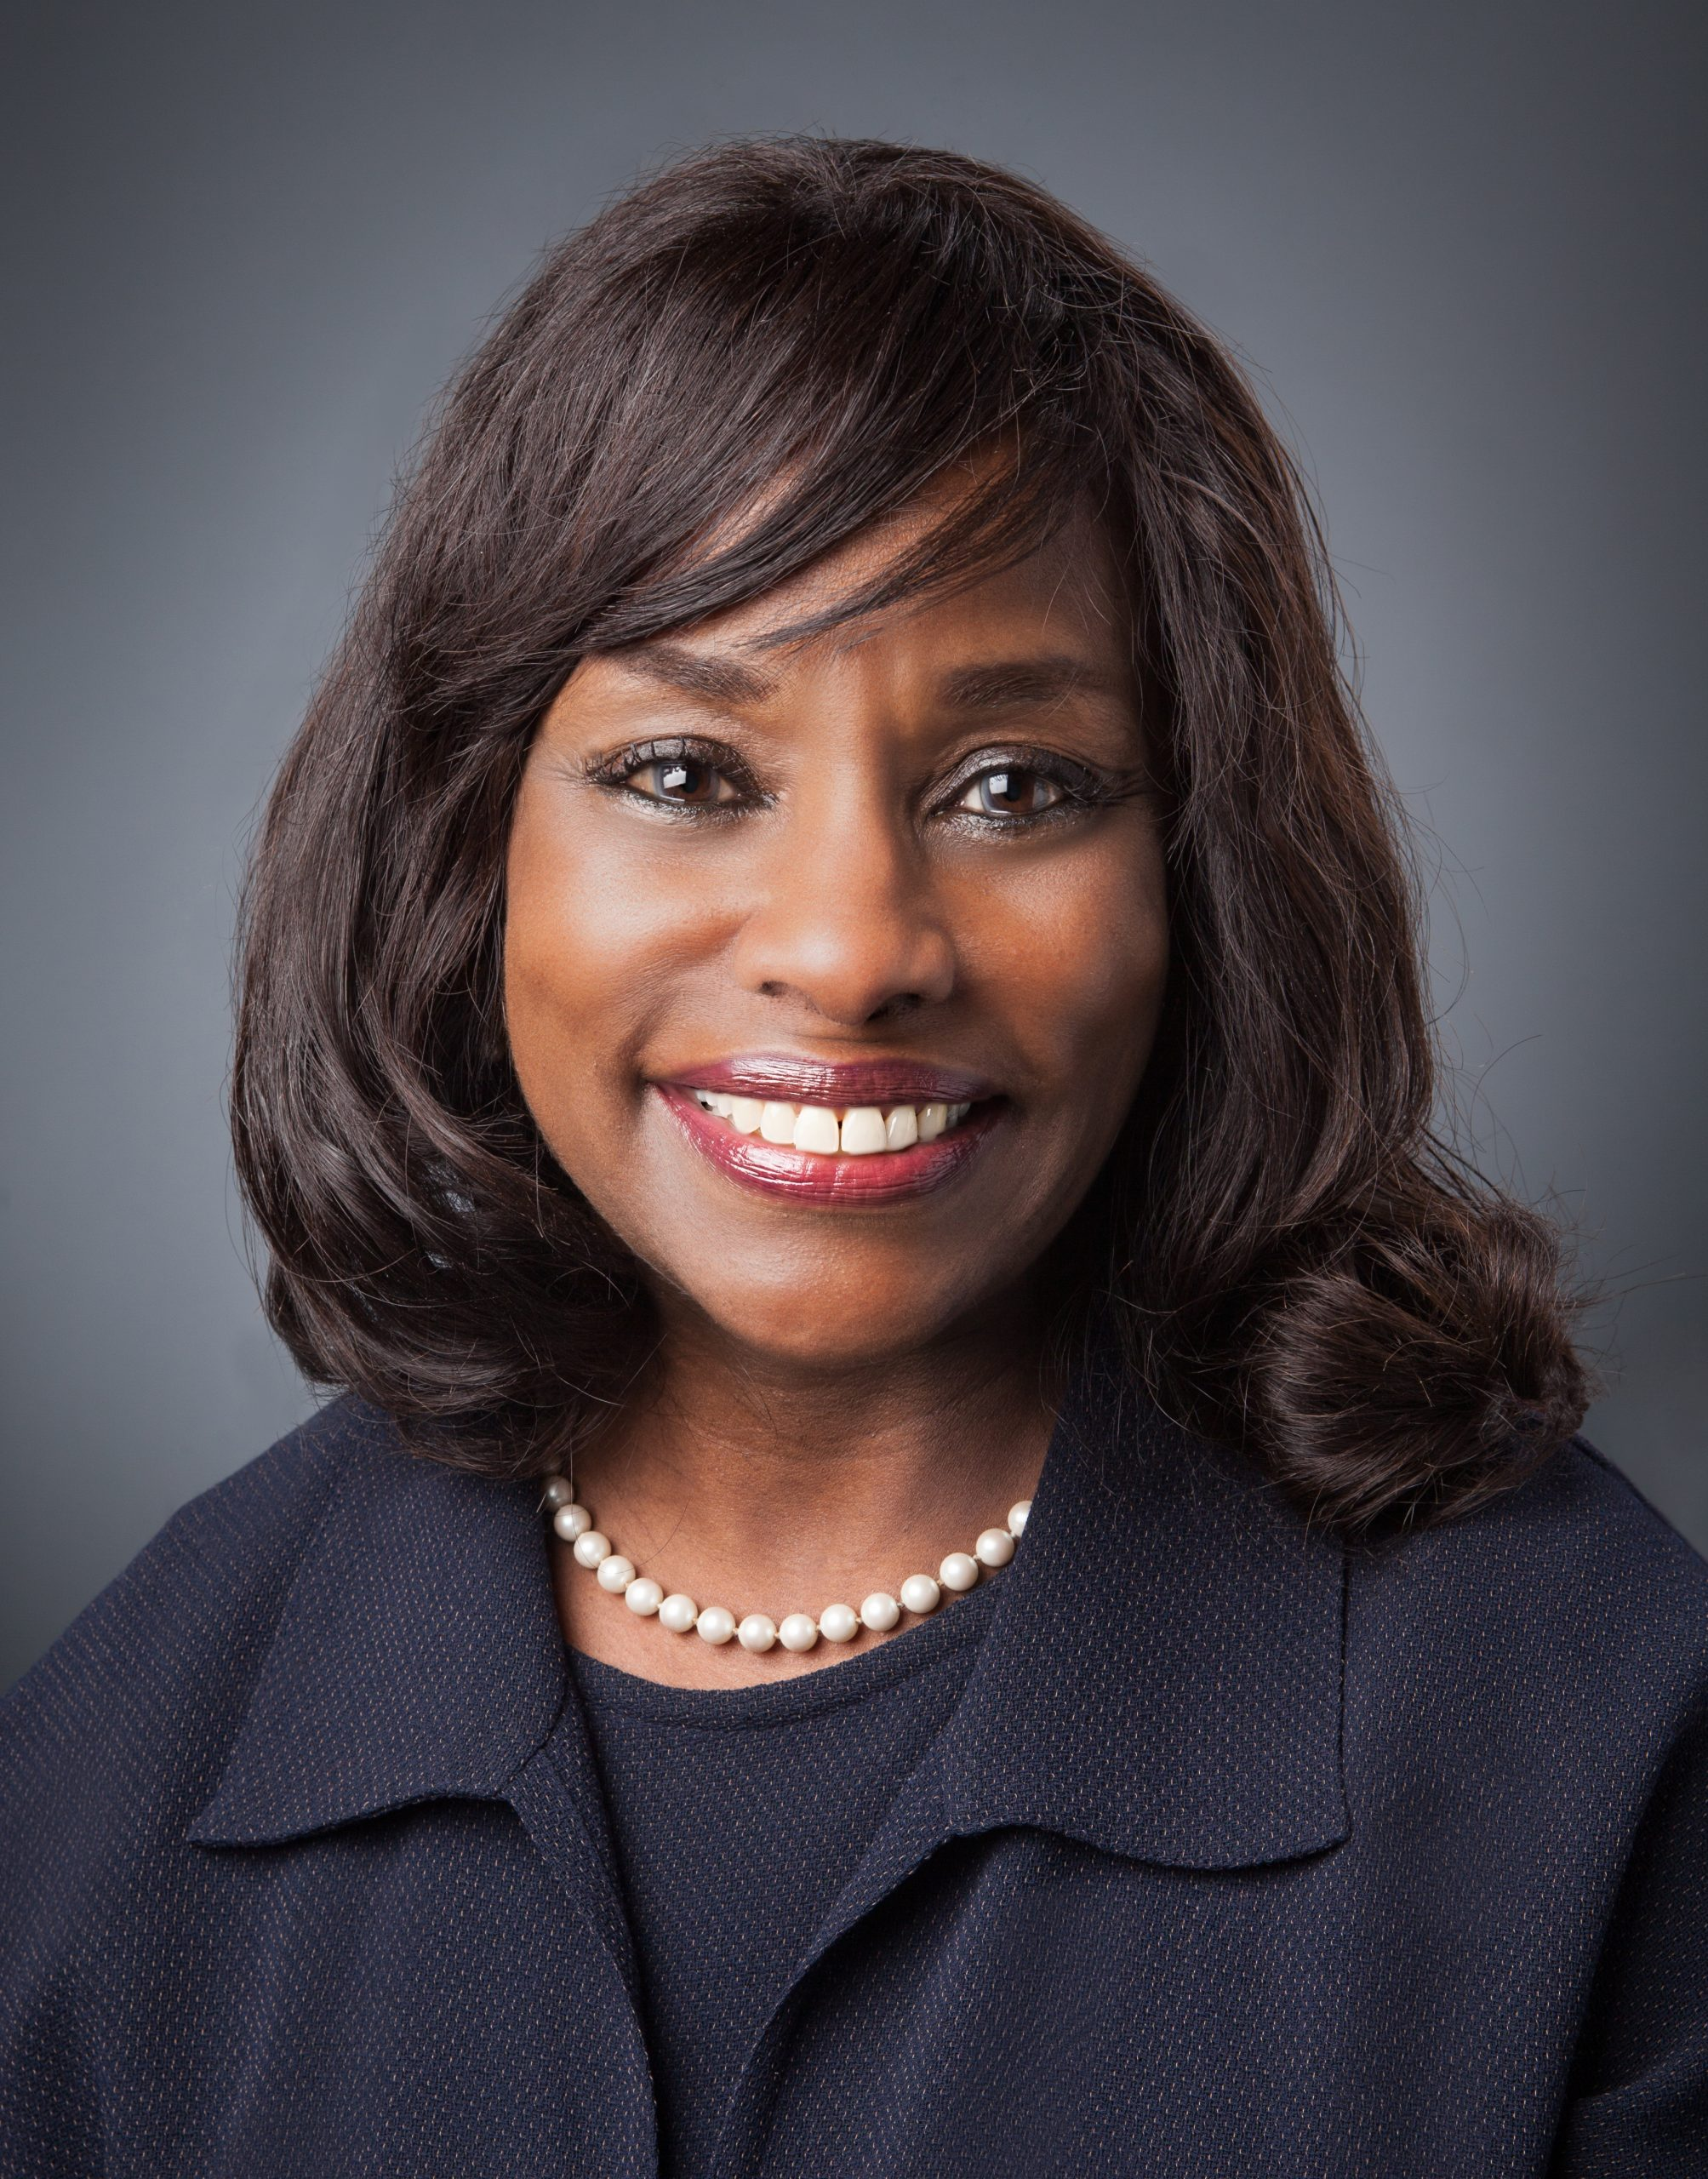 An African-American woman with shoulder-length dark brown hair smiles directly at the camera, close-up. She is wearing dark red lipstick, a pearl necklace and a black blazer with a matching black shirt under it. The background is light grey.